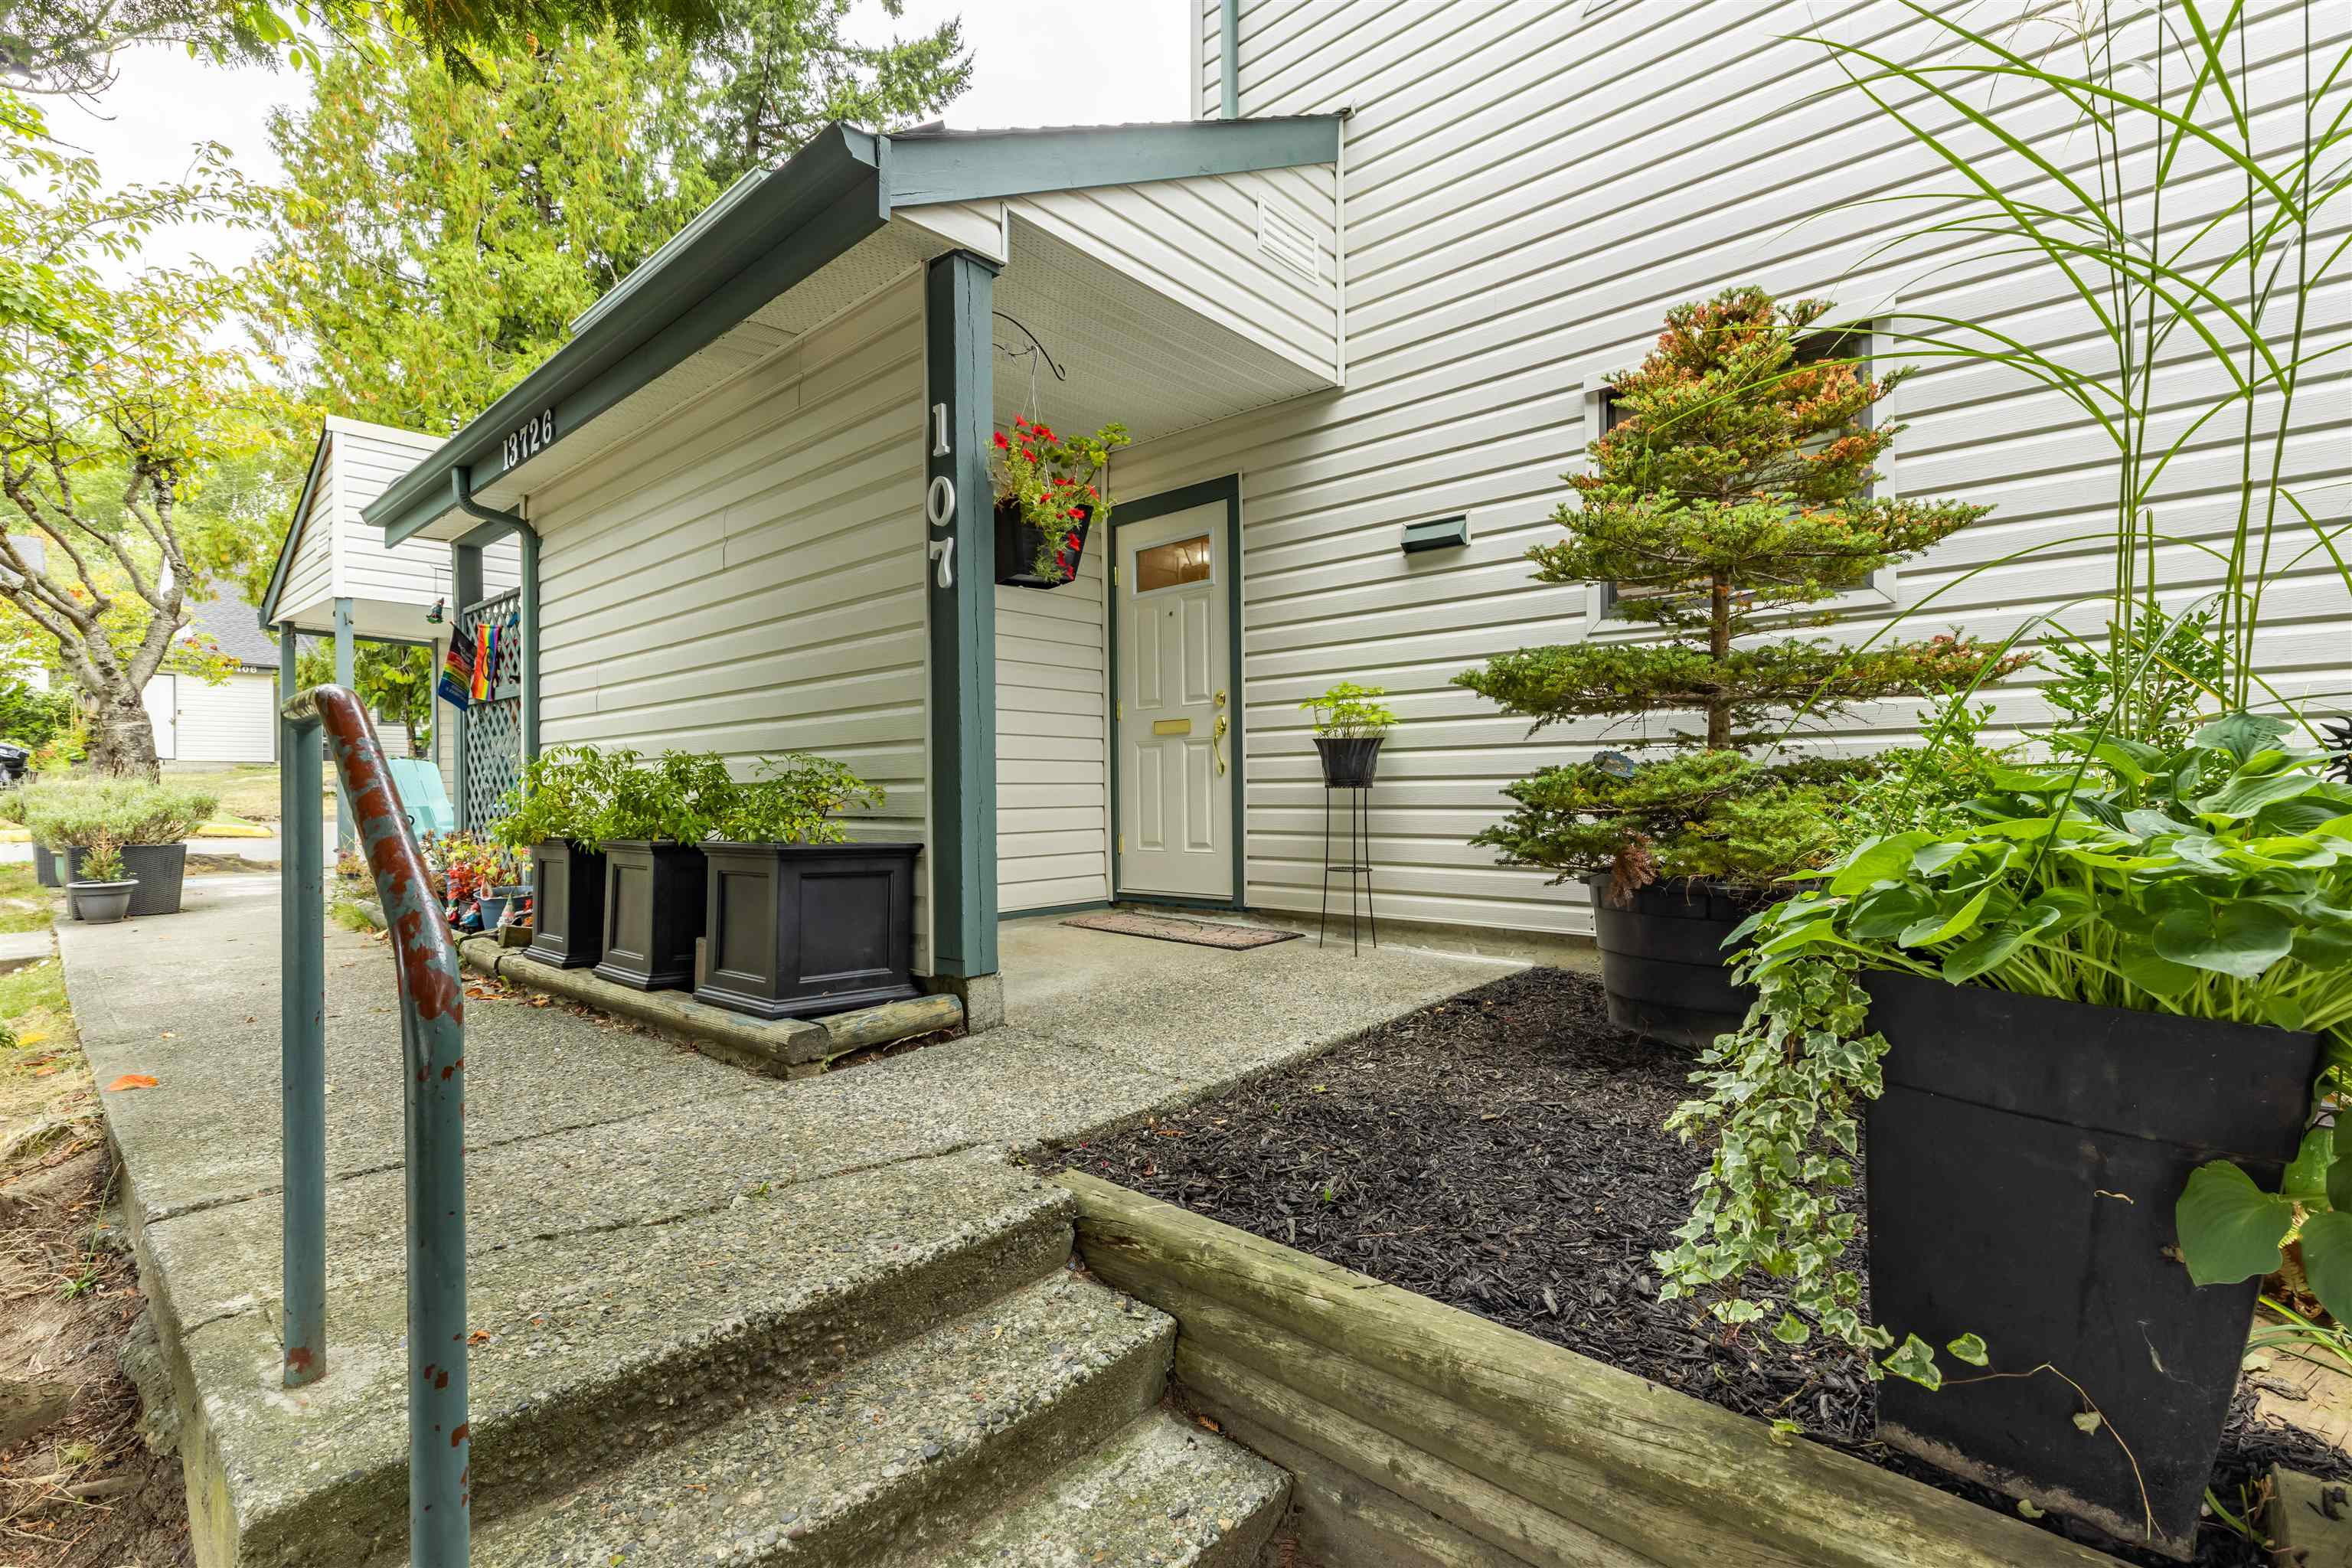 107 13726 67 AVENUE - East Newton Townhouse for sale, 3 Bedrooms (R2616694) - #23